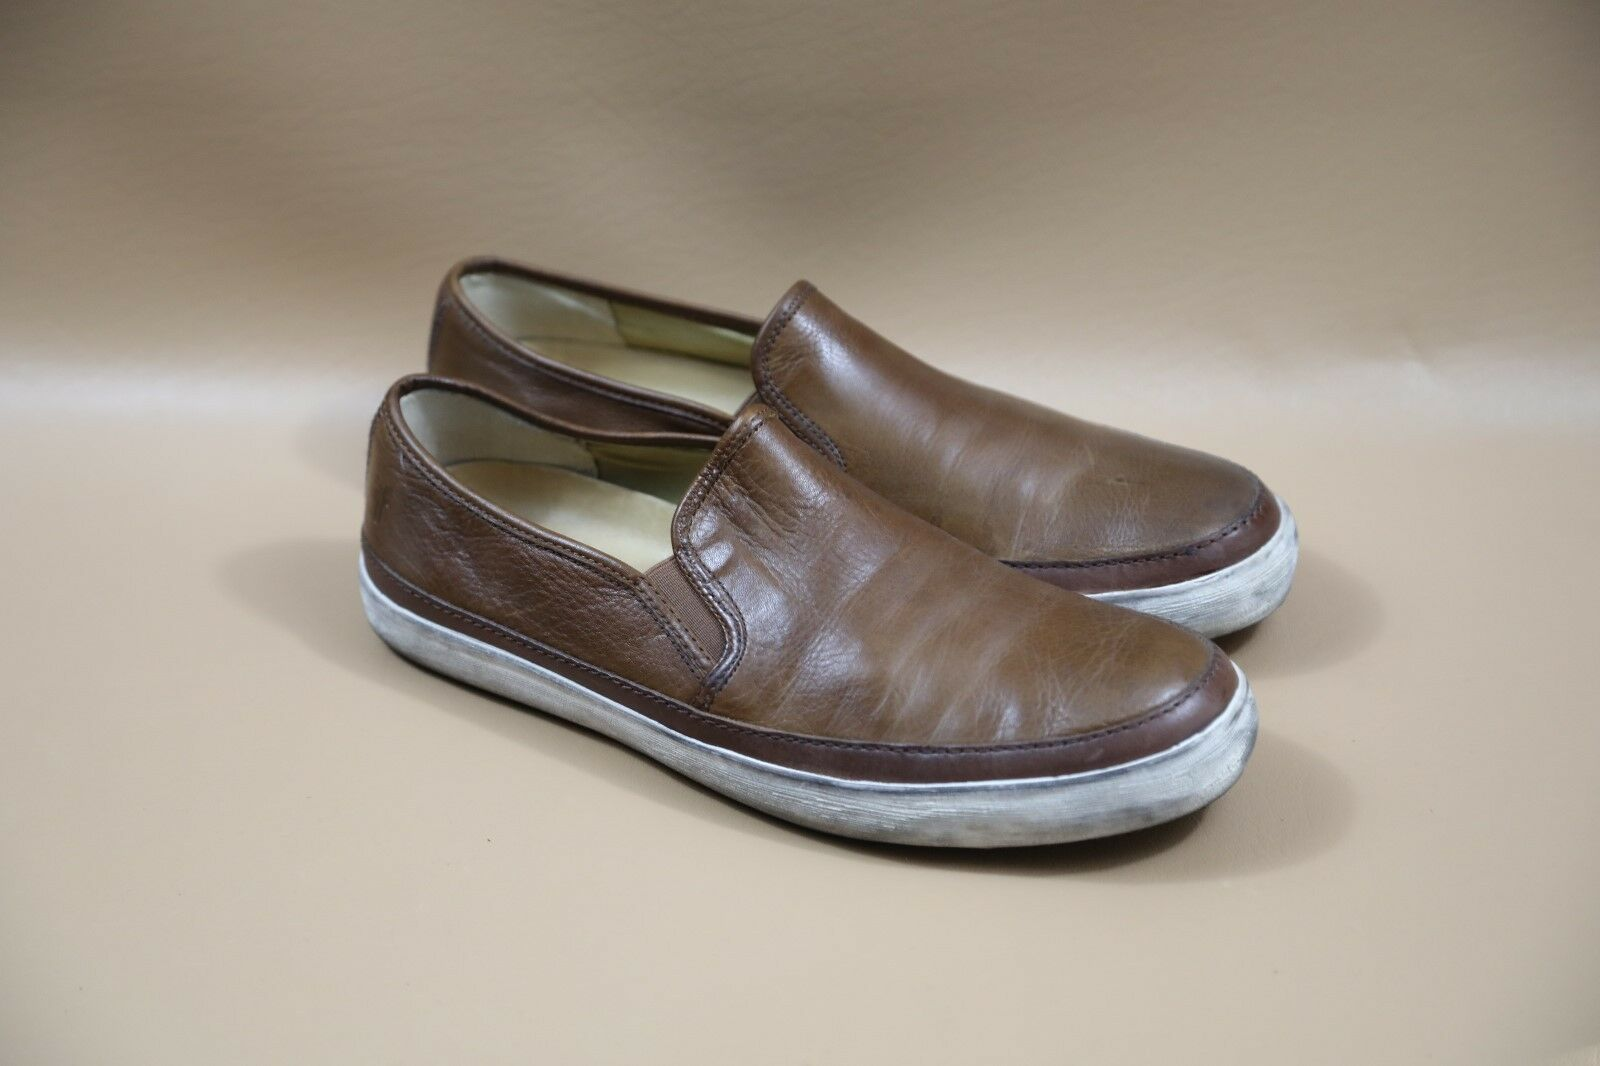 Frye Slip-On Leather Sneakers Size 10